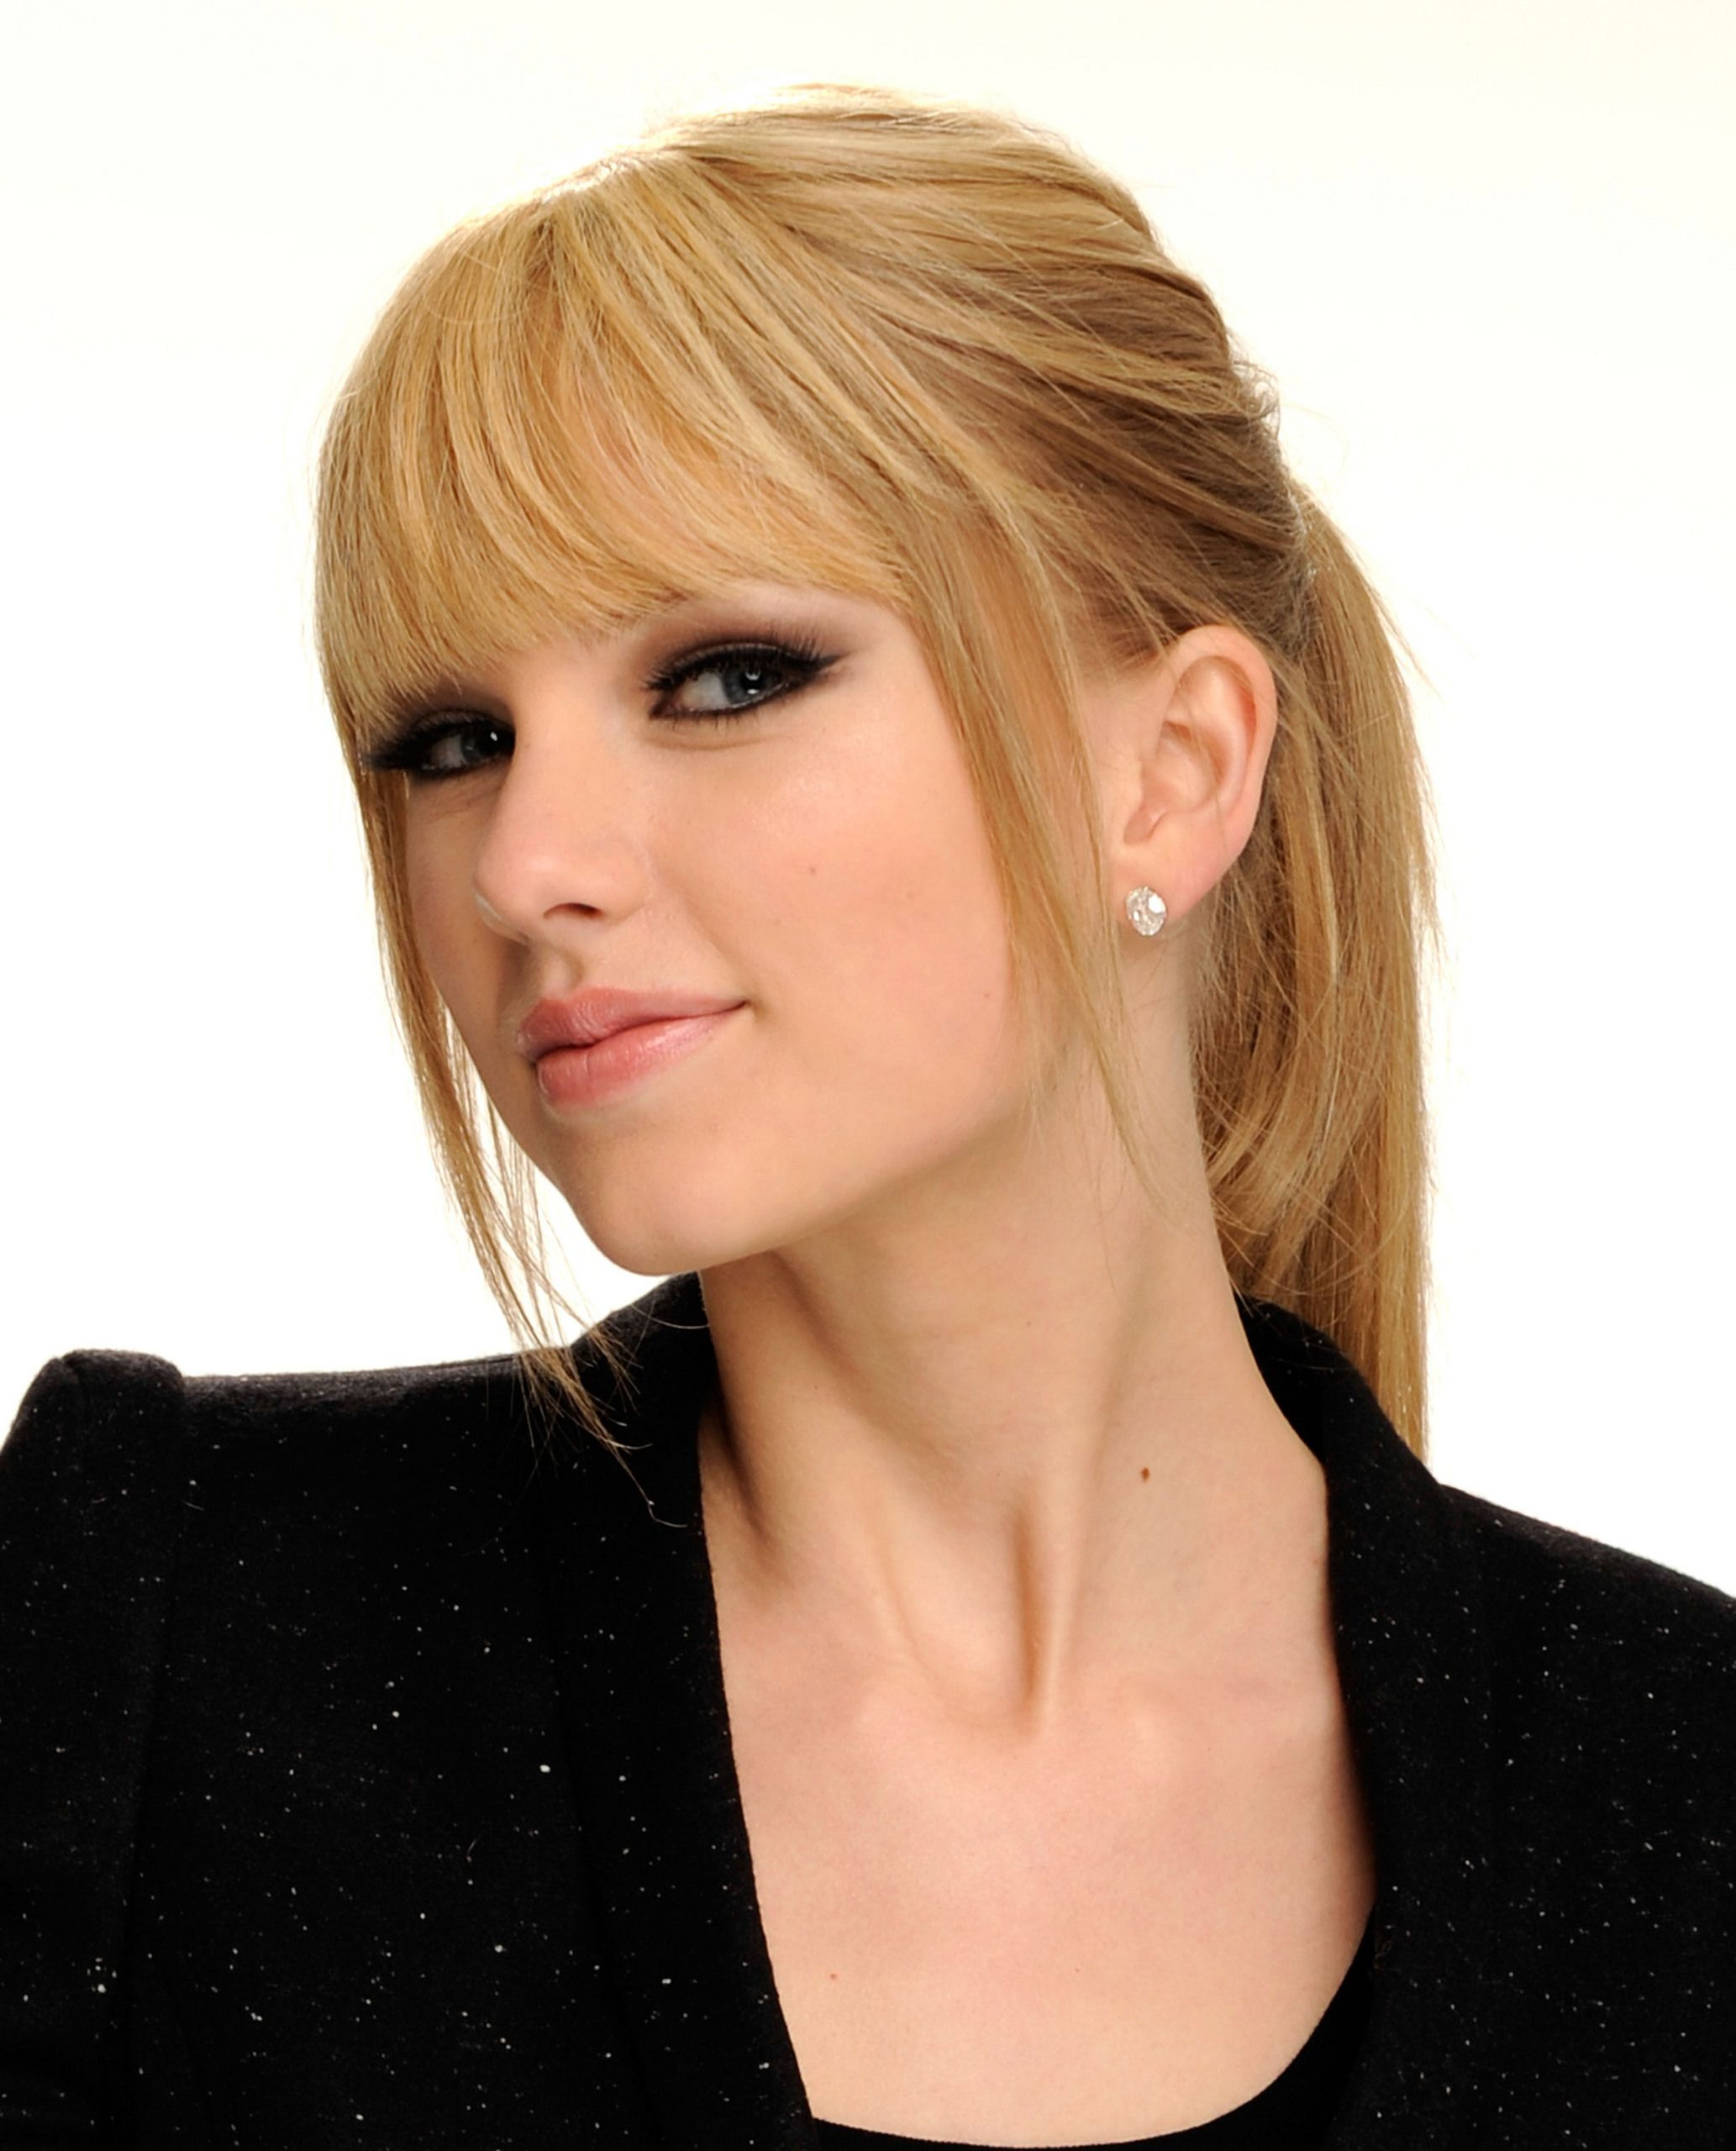 Taylor Swift Photo 2010 American Music Awards Portraits Taylor Swift Hair Hairstyle Hair Styles